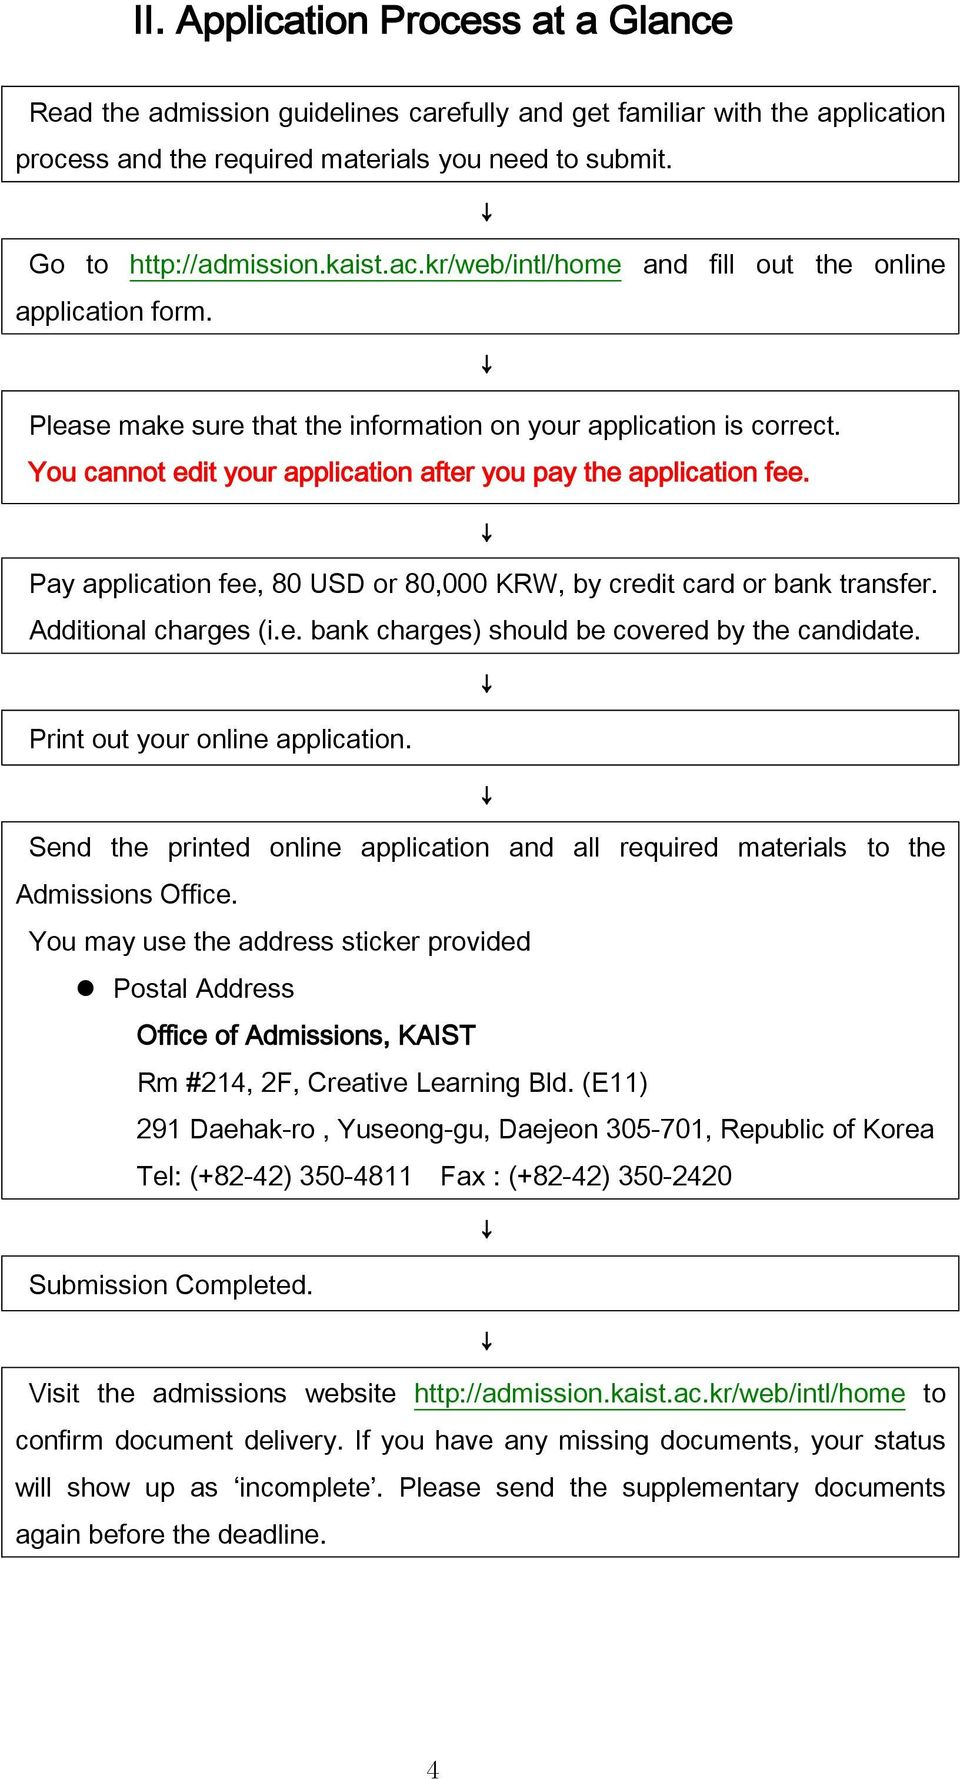 Pay application fee, 80 USD or 80,000 KRW, by credit card or bank transfer. Additional charges (i.e. bank charges) should be covered by the candidate. Print out your online application.